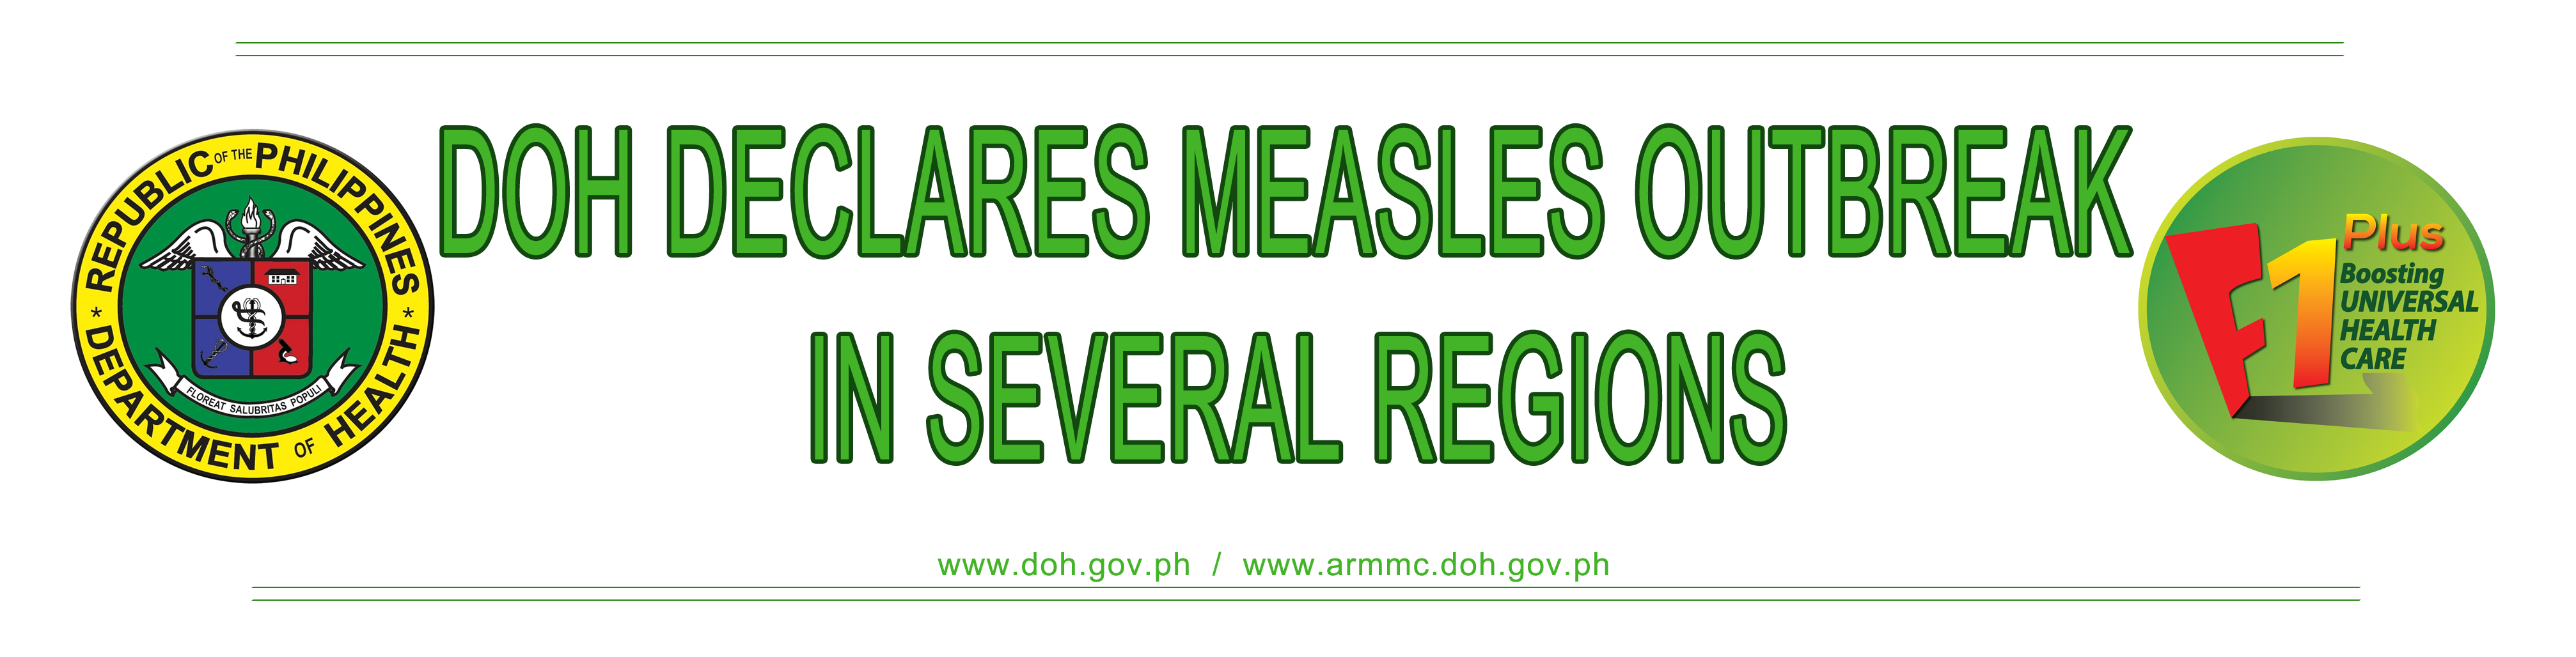 Declarion of Measles Outbreak